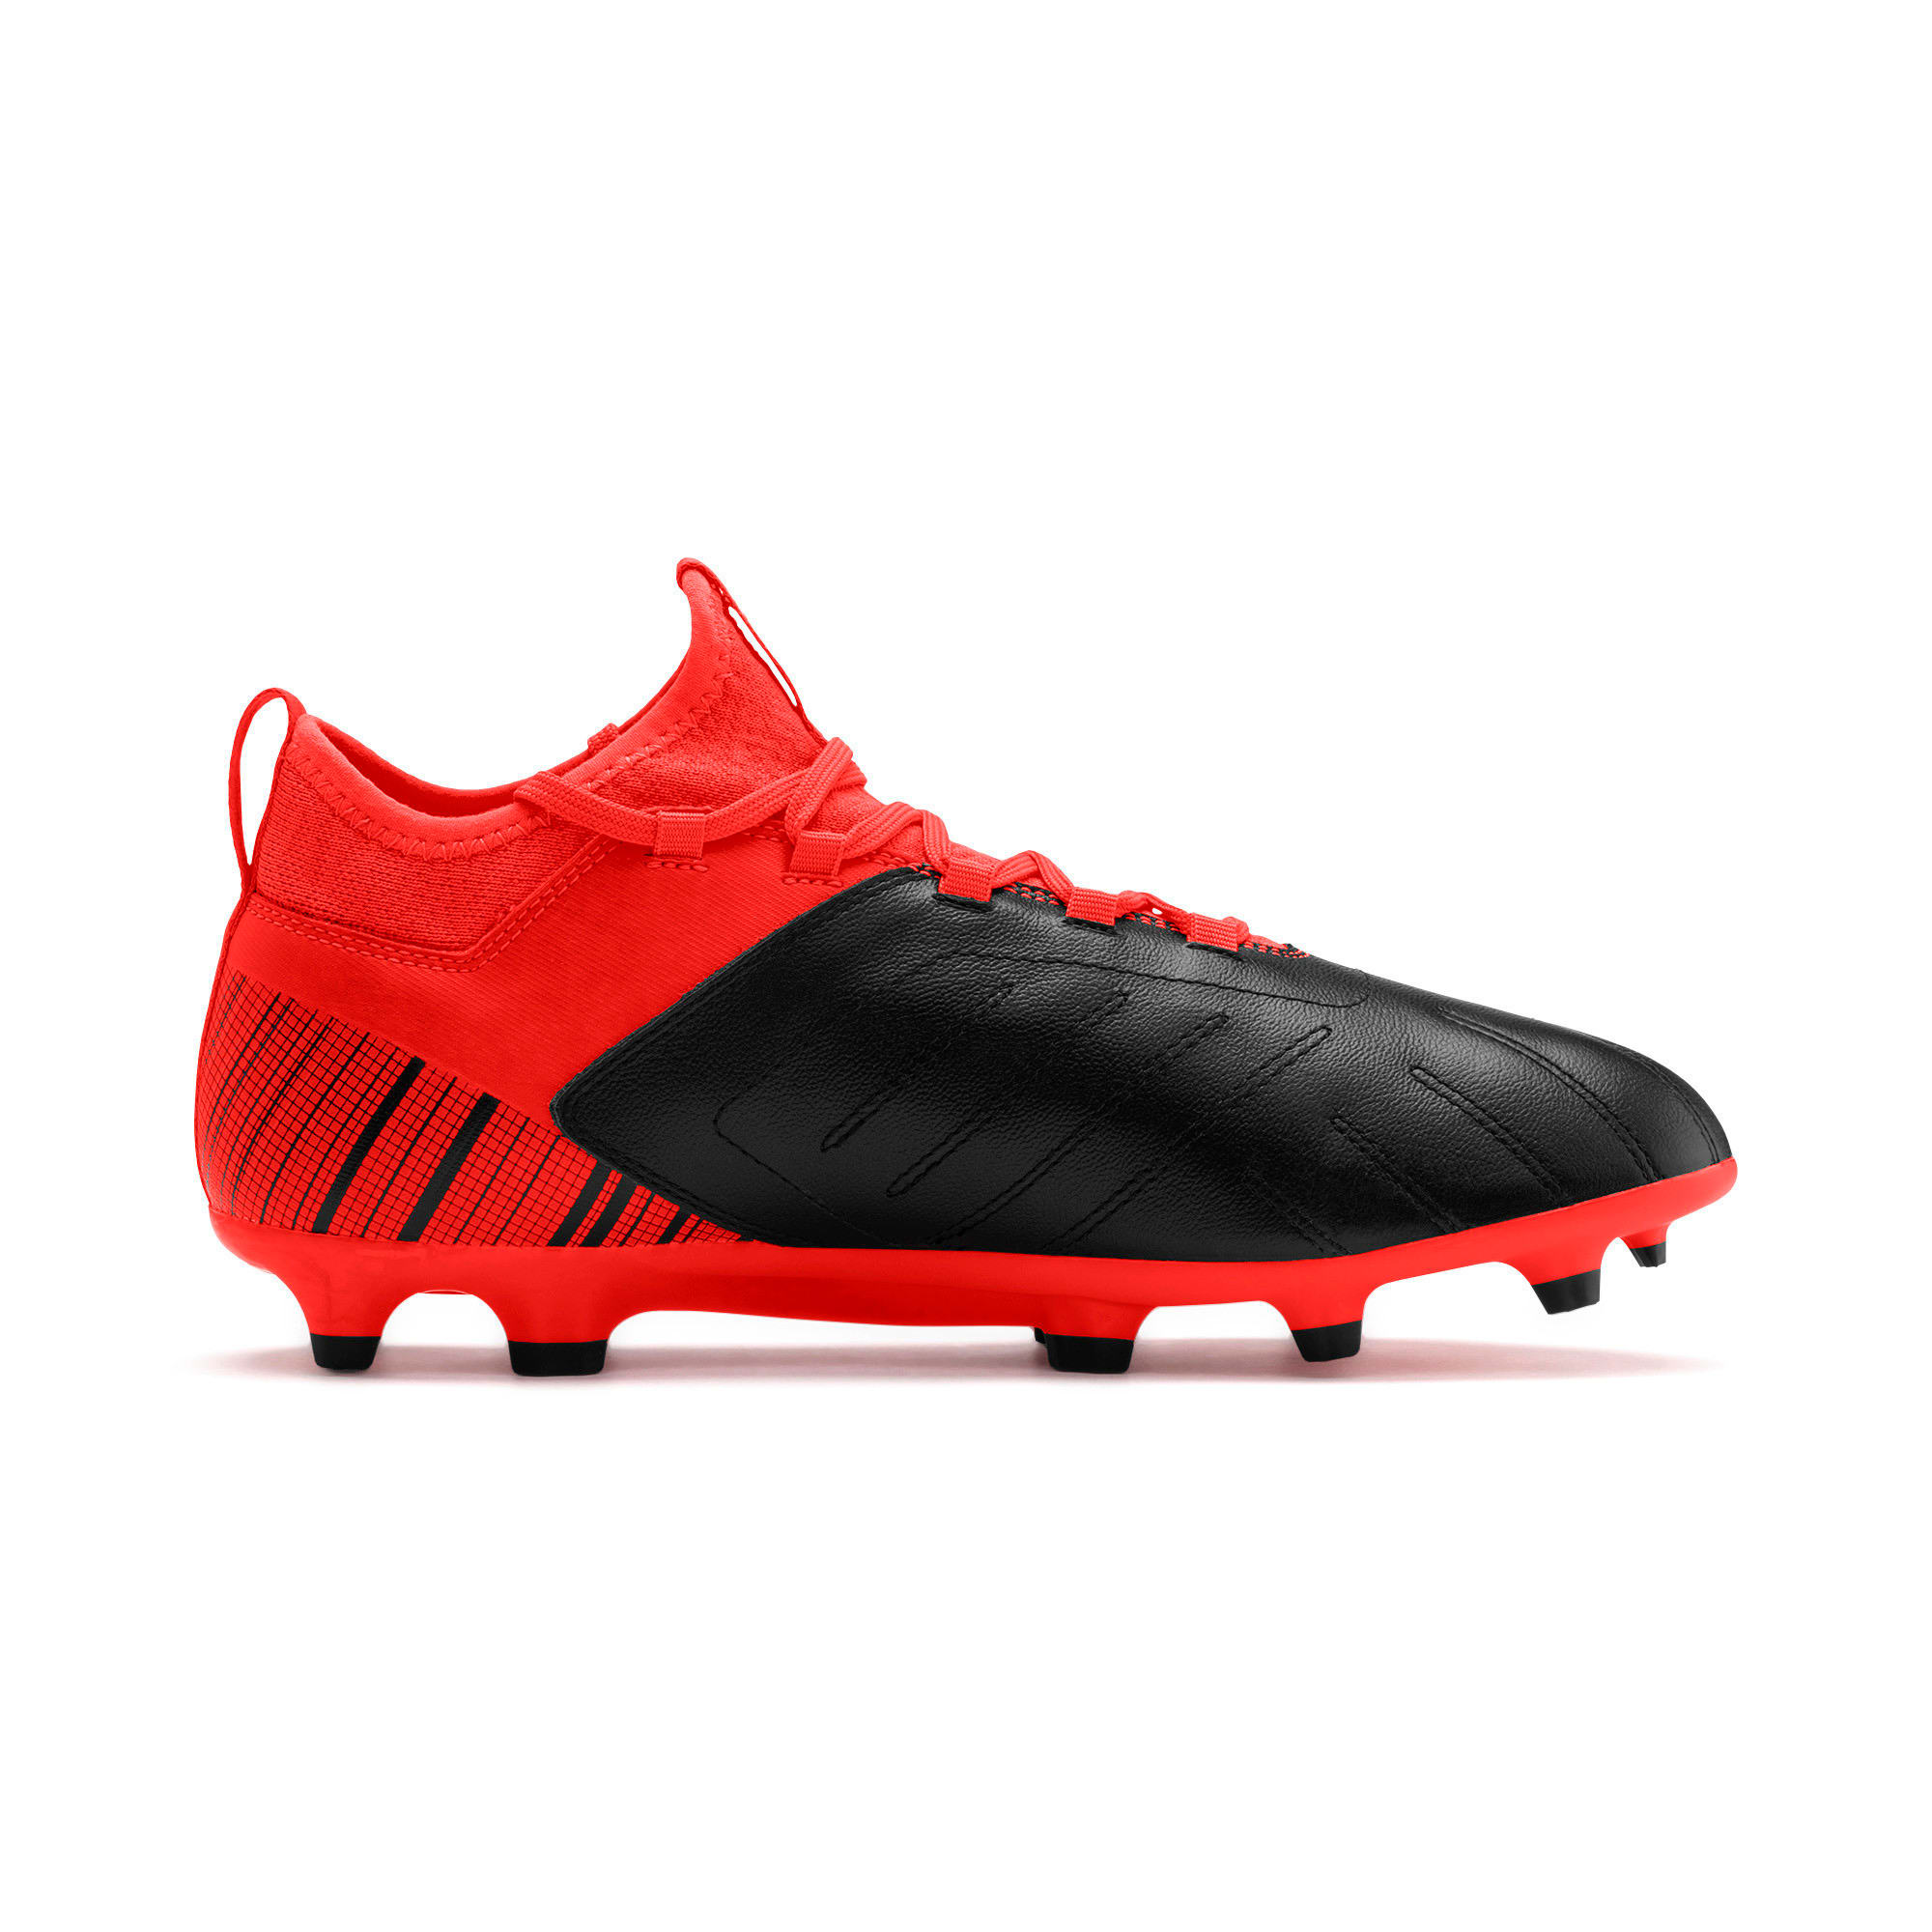 Thumbnail 6 of PUMA ONE 5.3 FG/AG Men's Soccer Cleats, Black-Nrgy Red-Aged Silver, medium